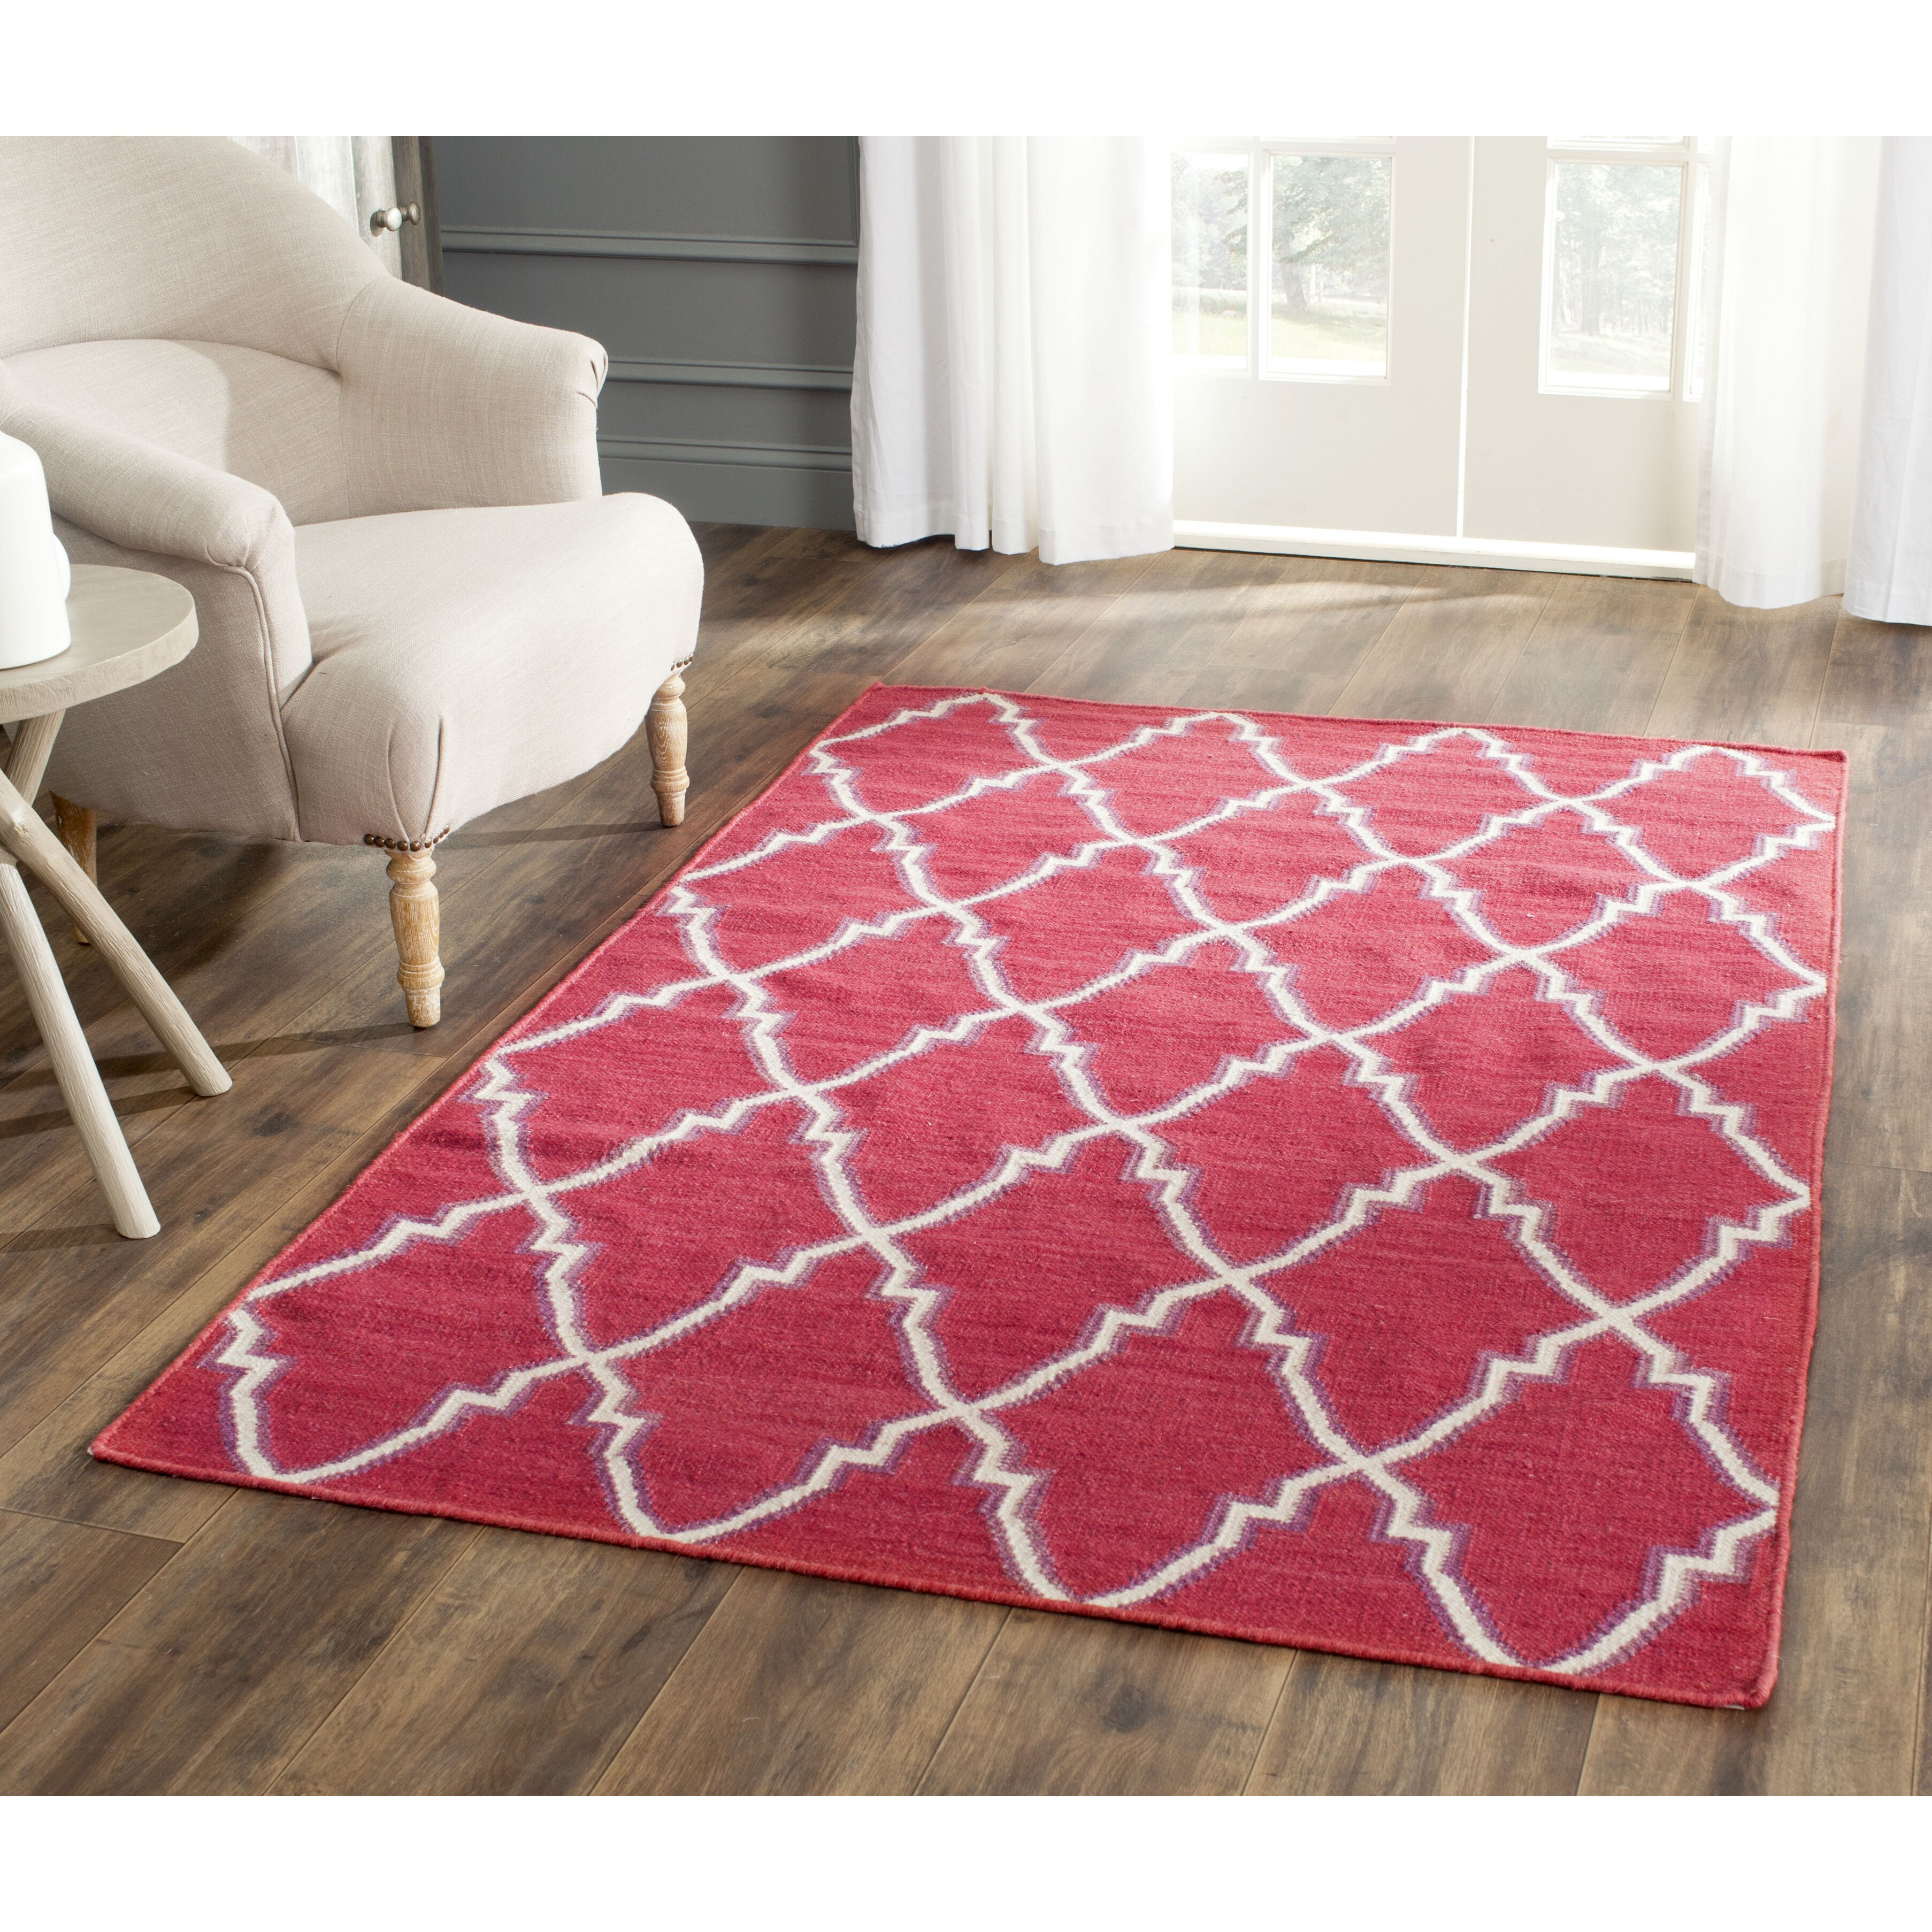 Safavieh Dhurrie Red/Ivory Area Rug & Reviews